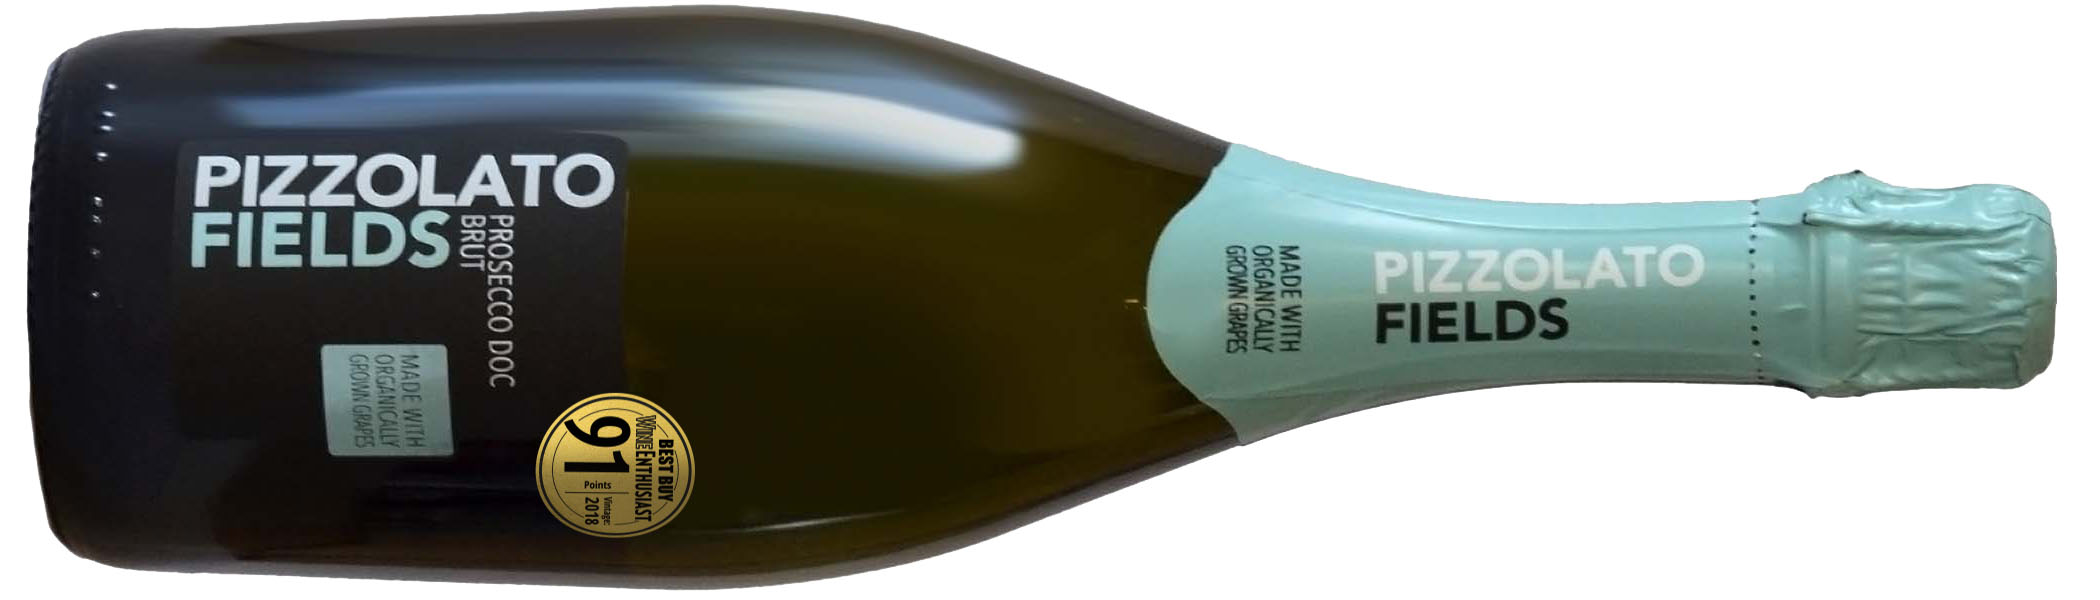 Pizzolato Fields Prosecco Spumante 90 Point Organic Wines